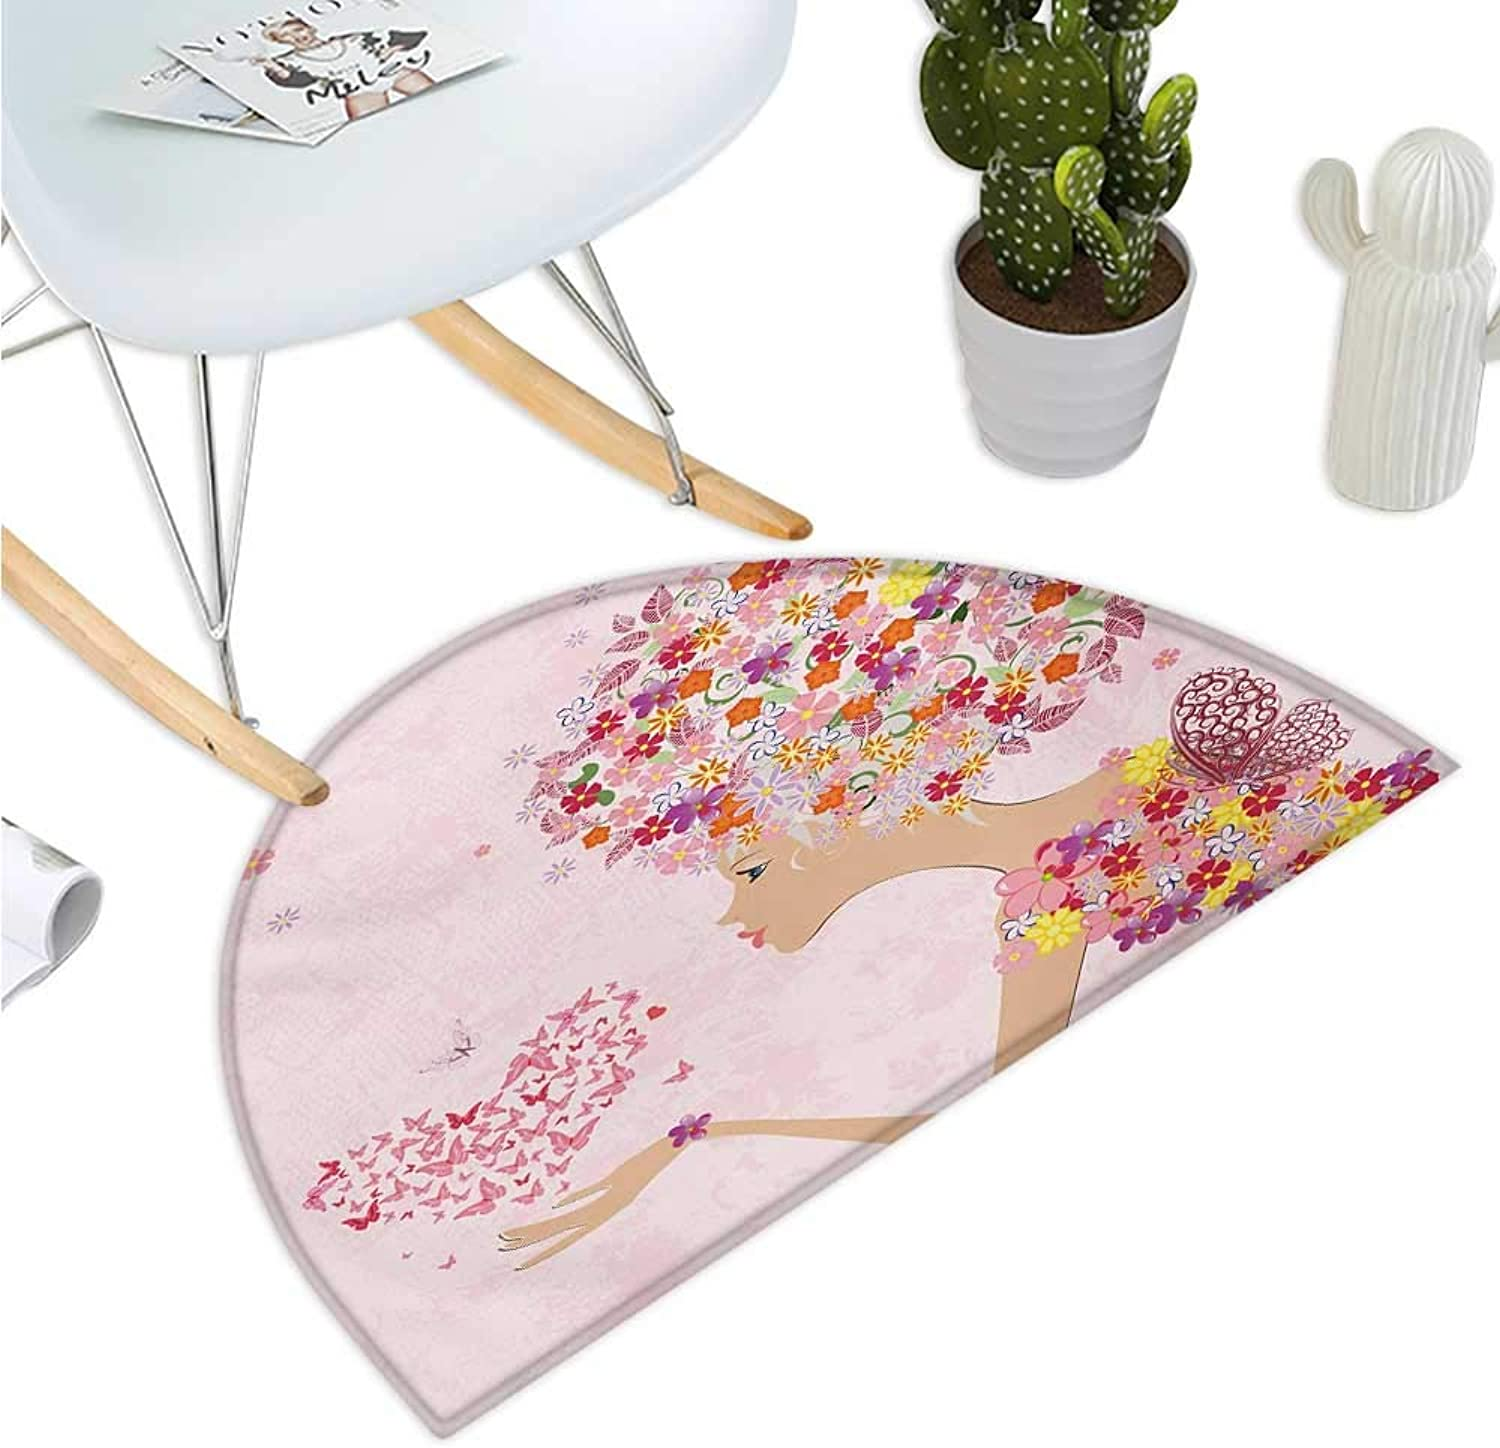 Pink Semicircle Doormat Fashion Flowers Girl with Heart of Butterflies Wings Spring Theme Artistic Hand Drawn Entry Door Mat H 39.3  xD 59  Multicolor